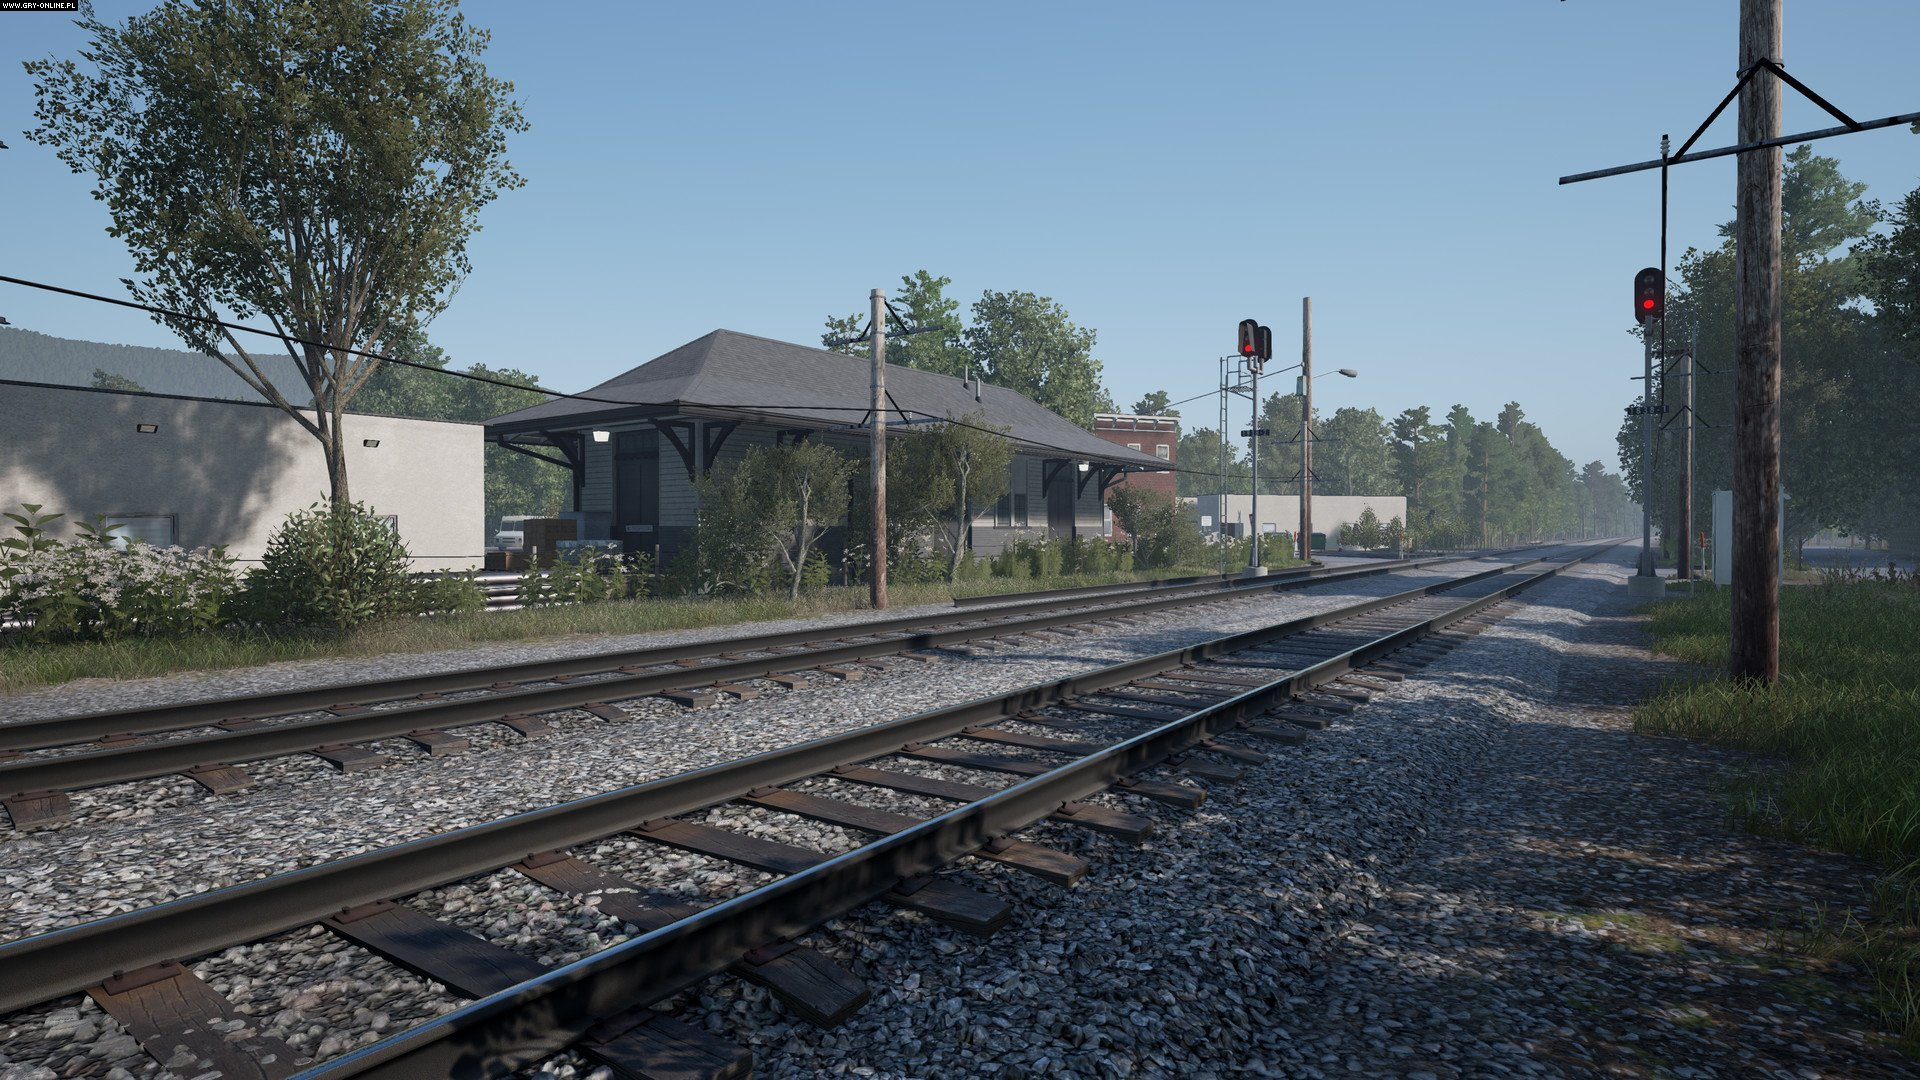 Train Sim World: CSX Heavy Haul PC, XONE Games Image 4/8, Dovetail Games/Rail Simulator Developments